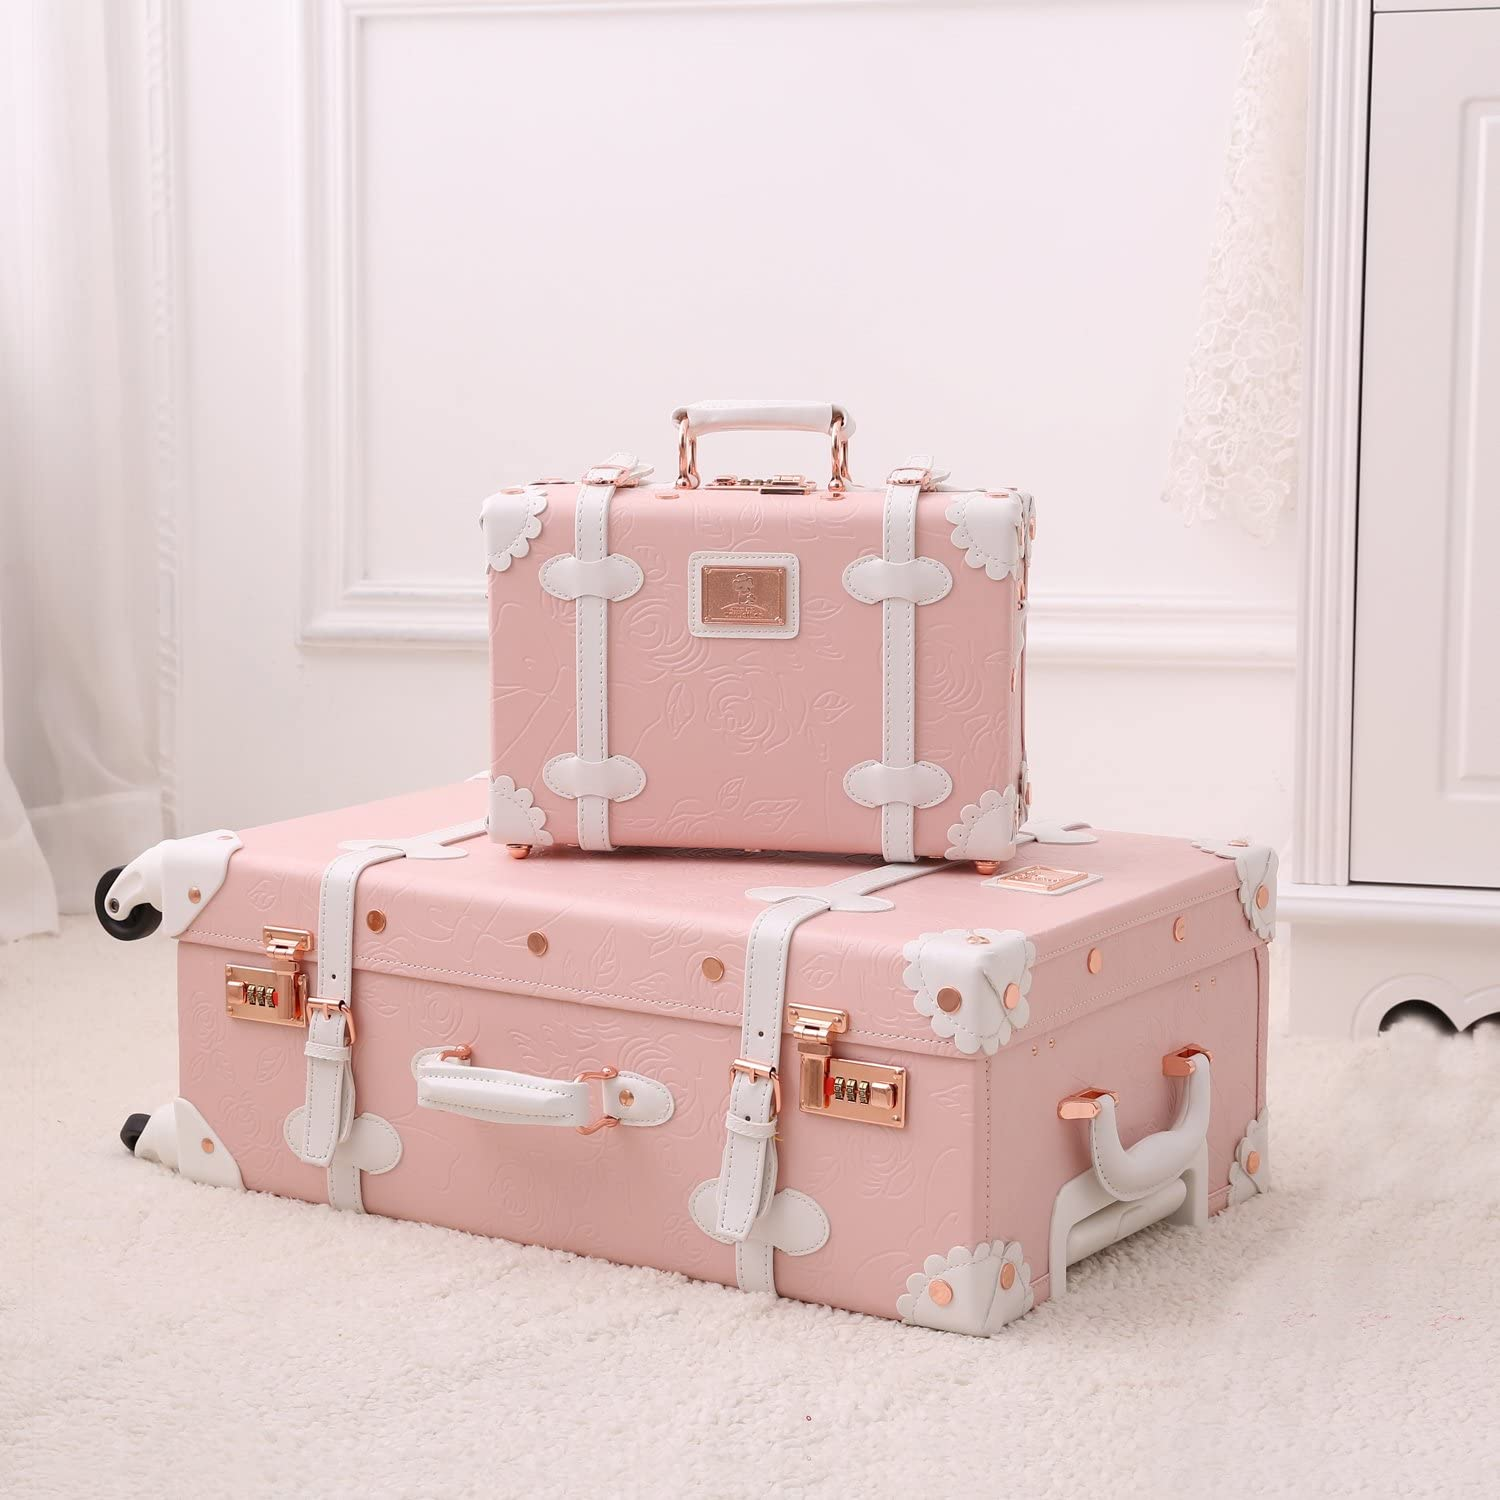 Unitravel Travel Luggage Spinner Wheels Vintage Cute Suitcase for Women Carry On